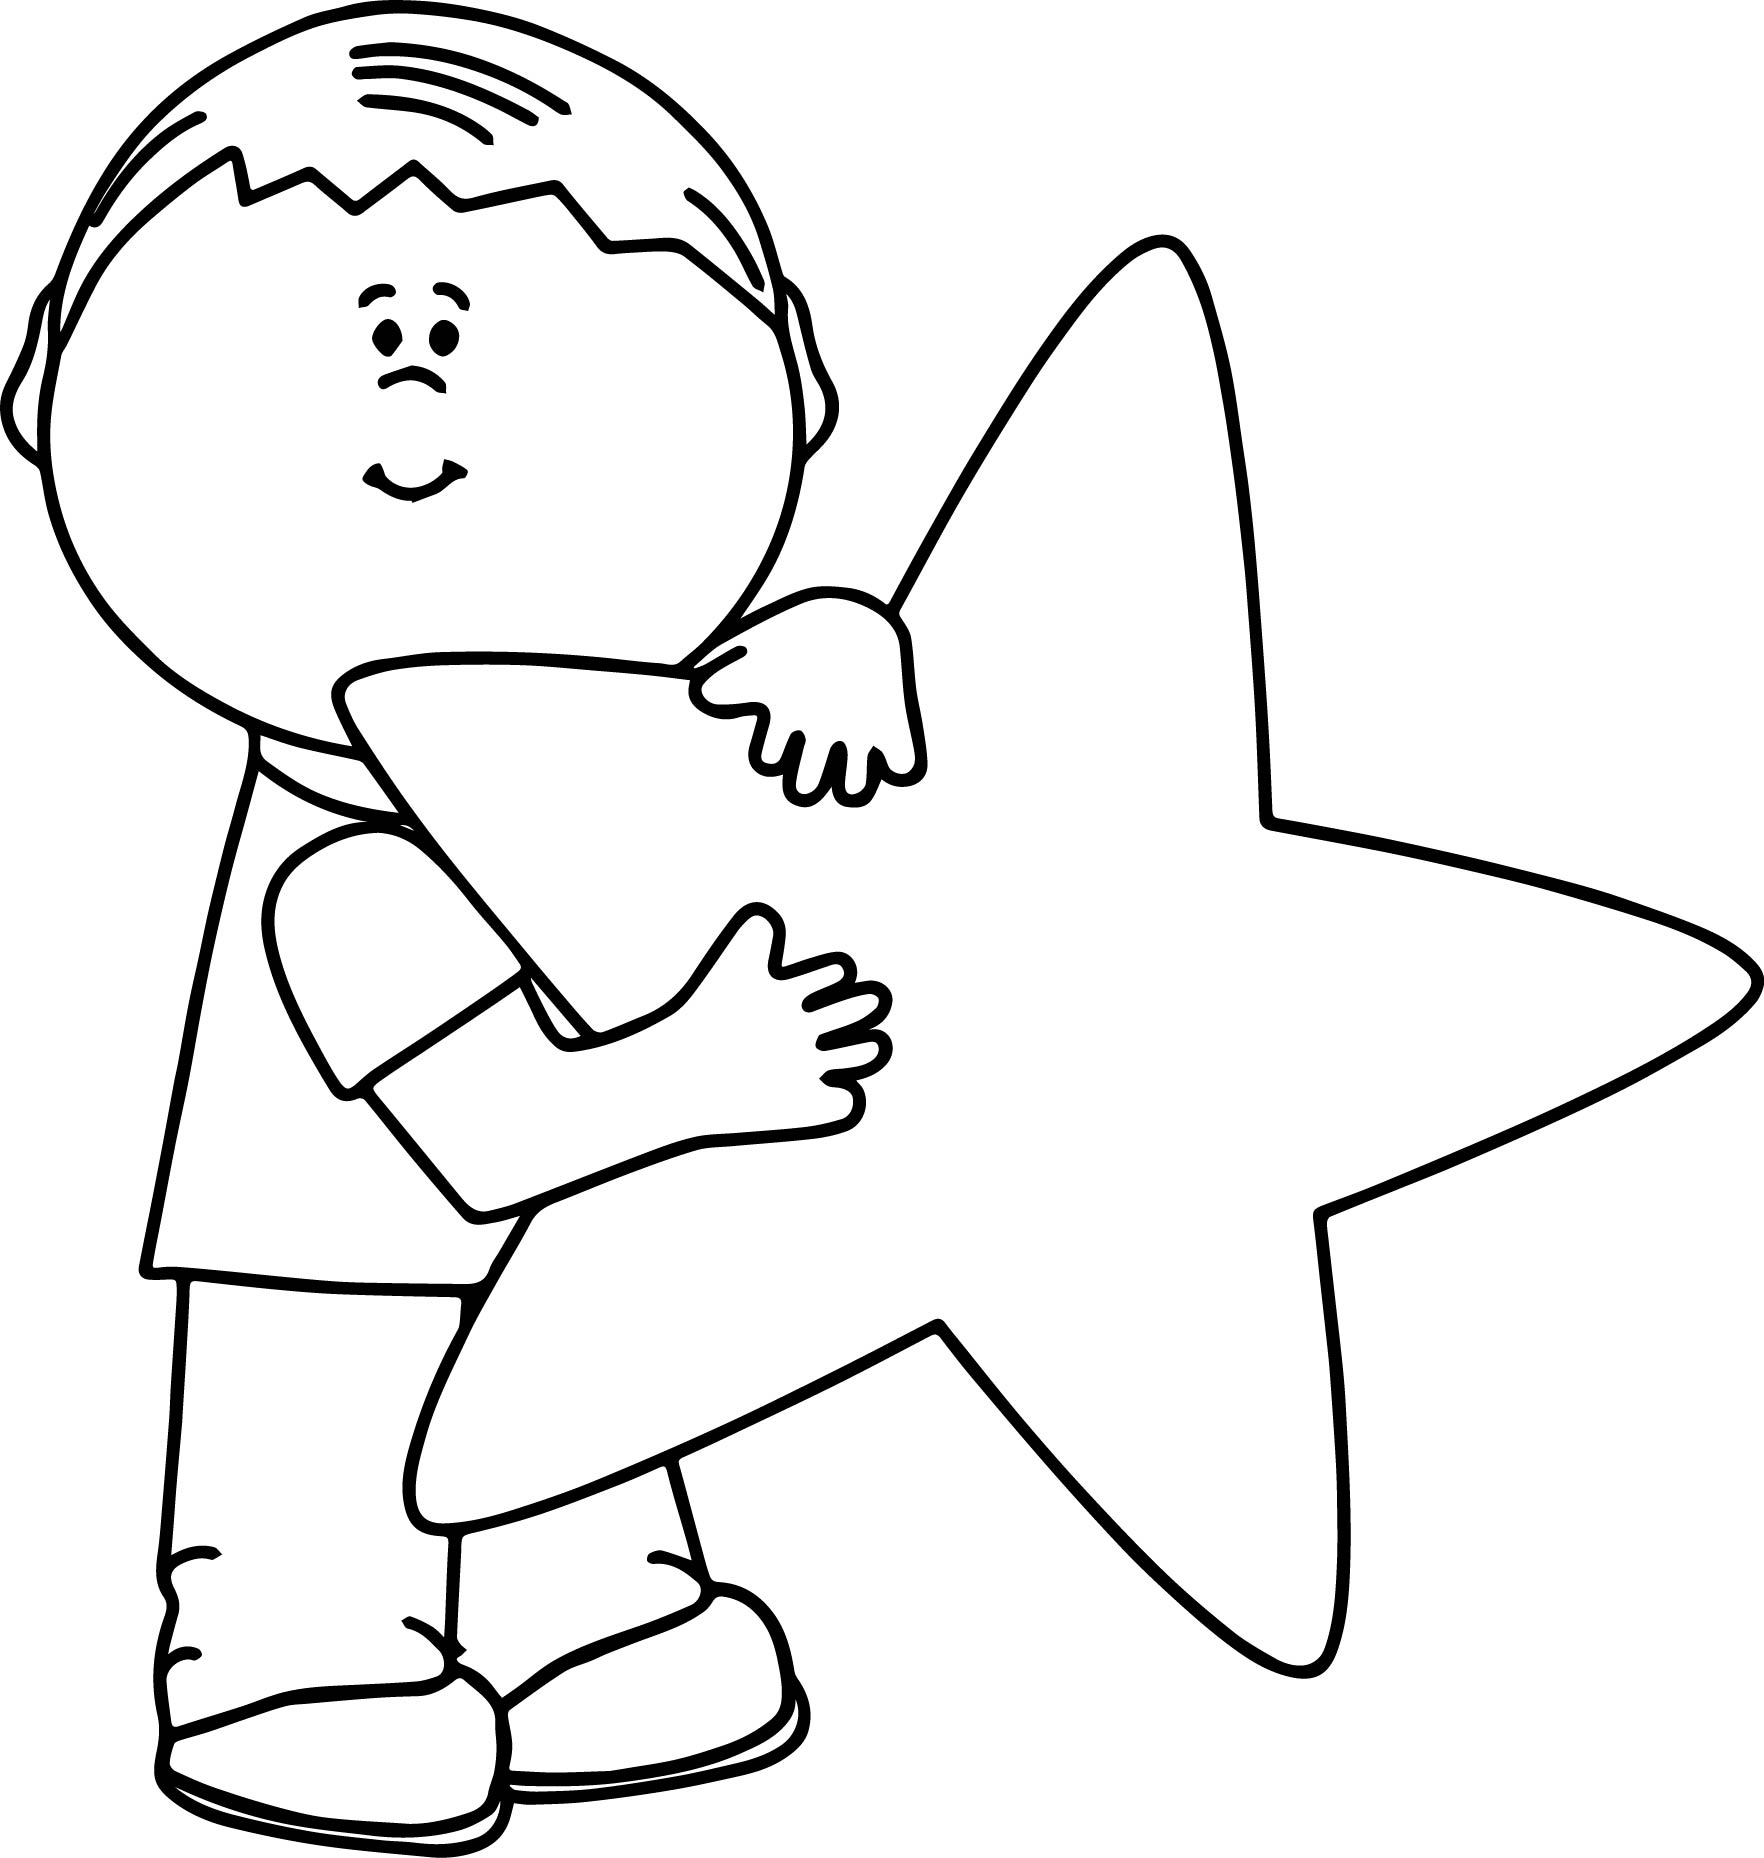 Ninja Star Coloring Pages